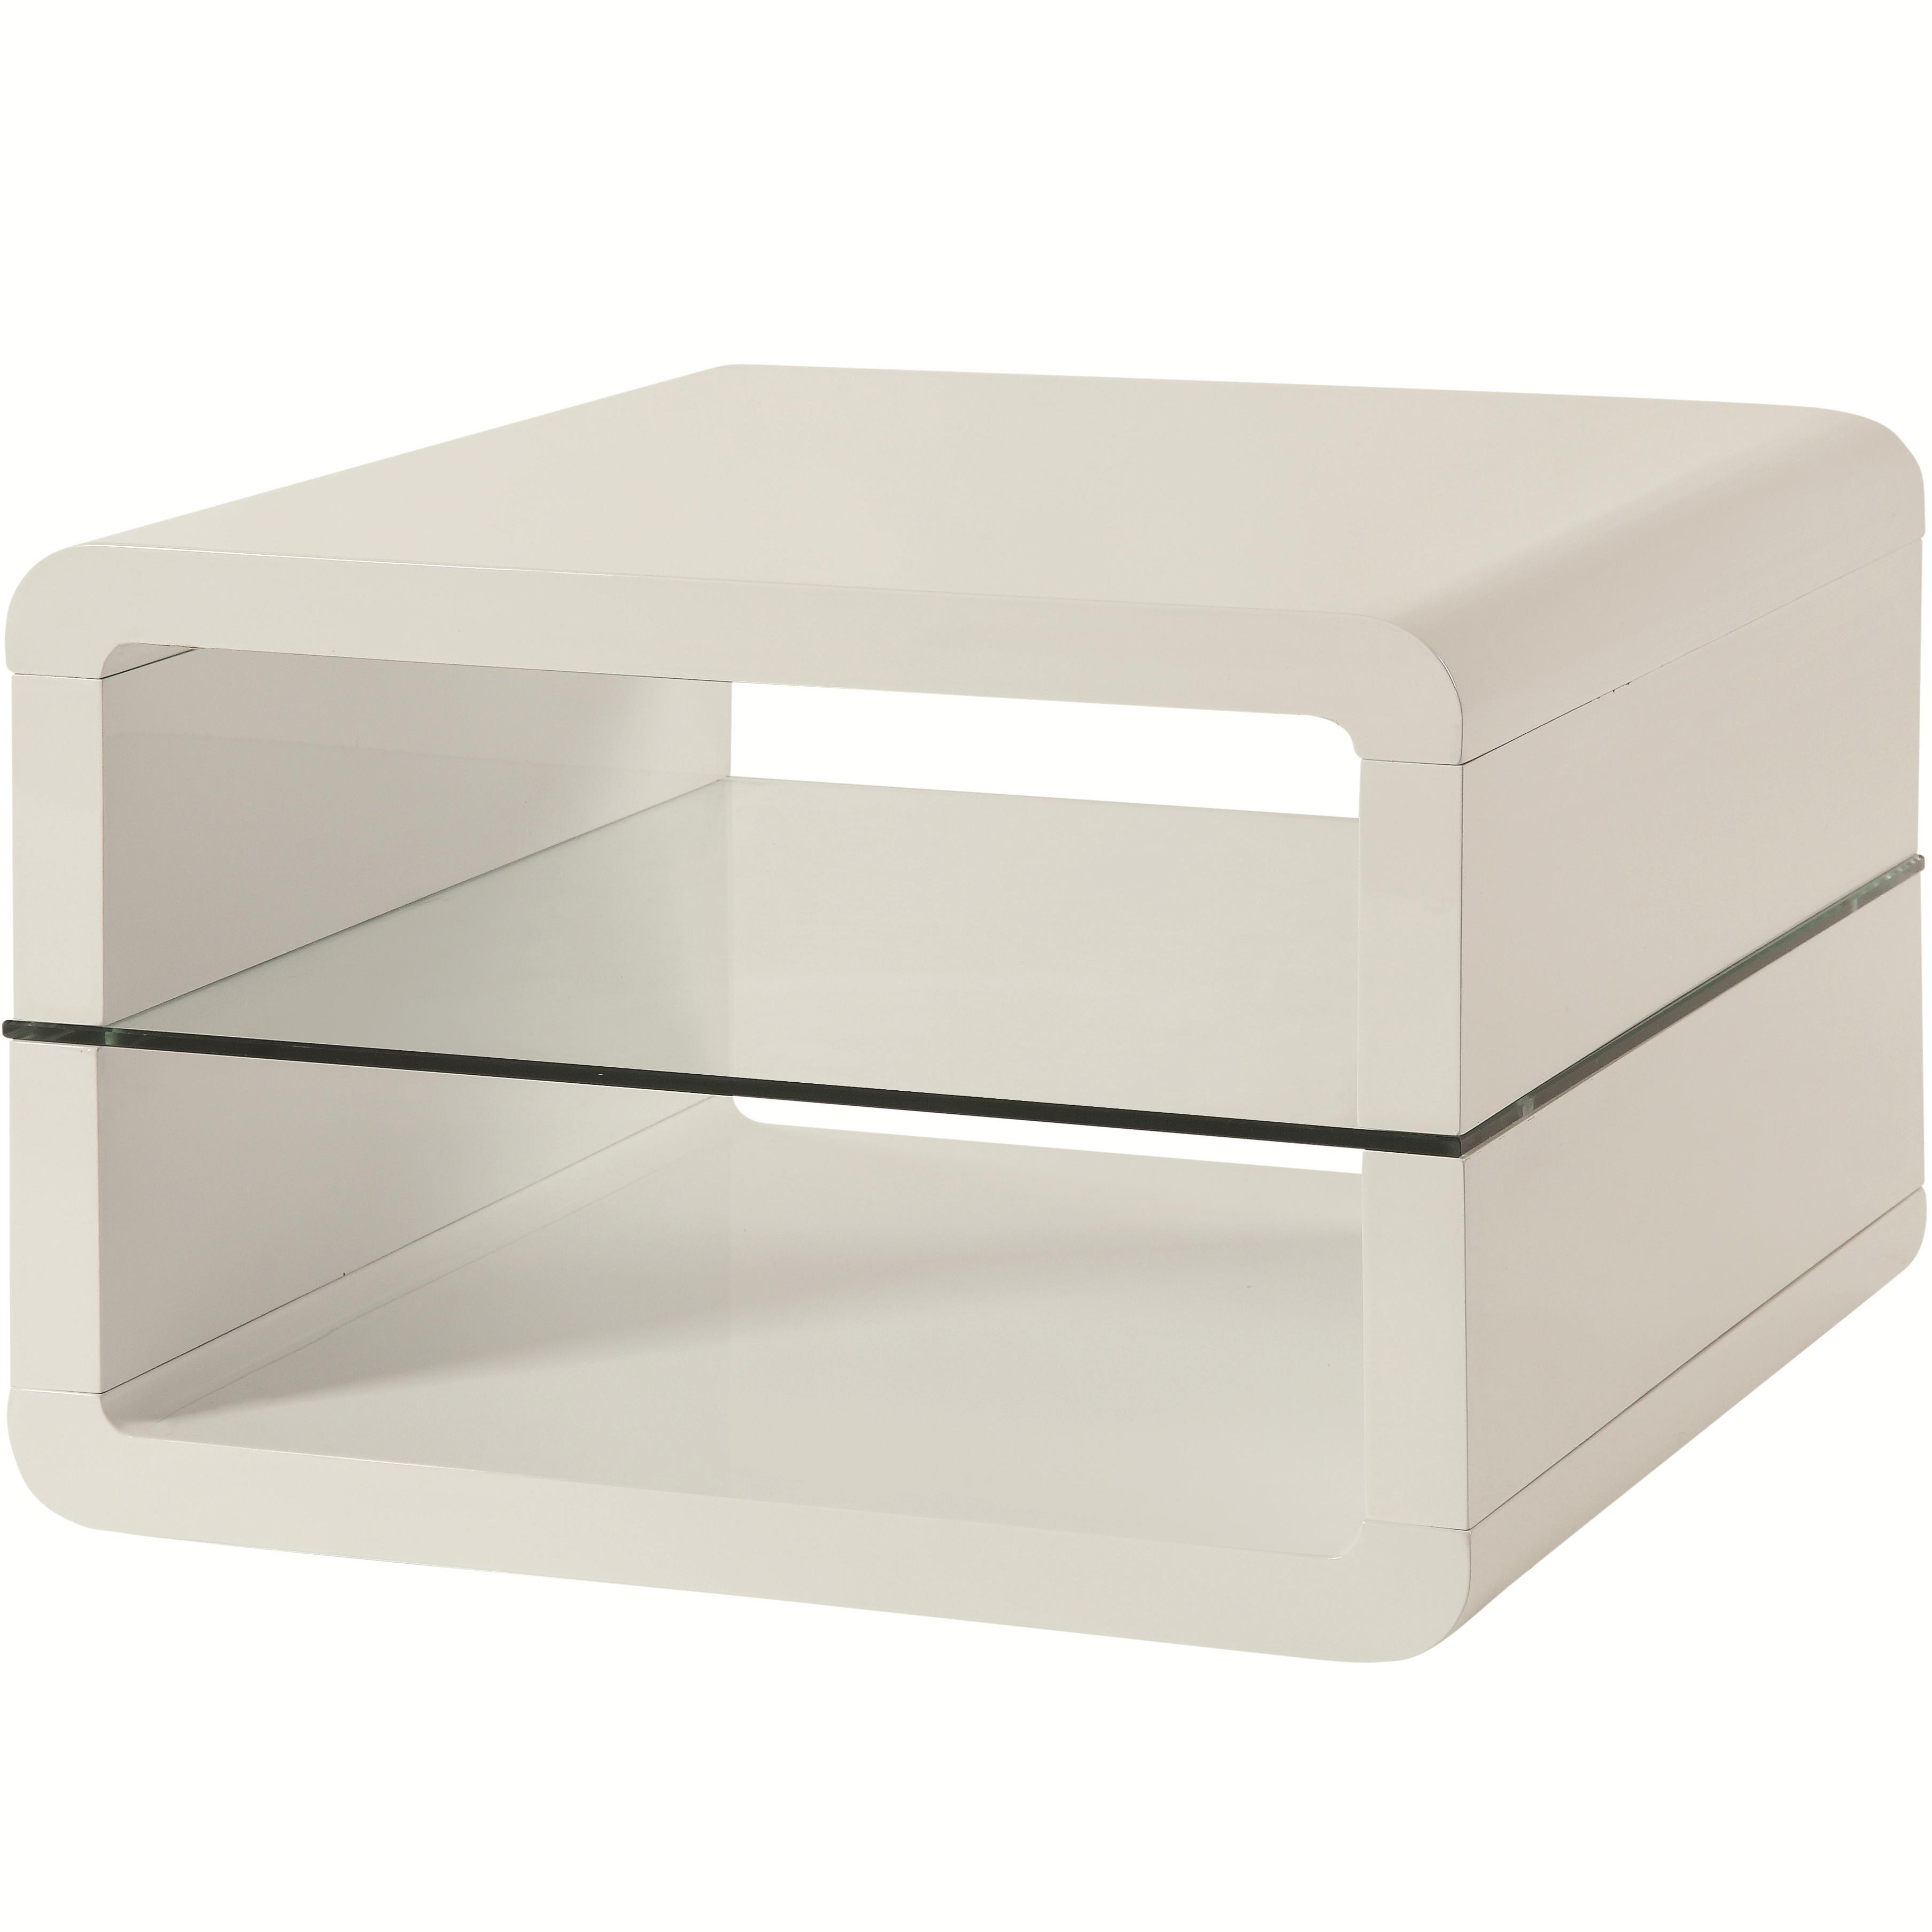 70326 End Table by Coaster at Corner Furniture